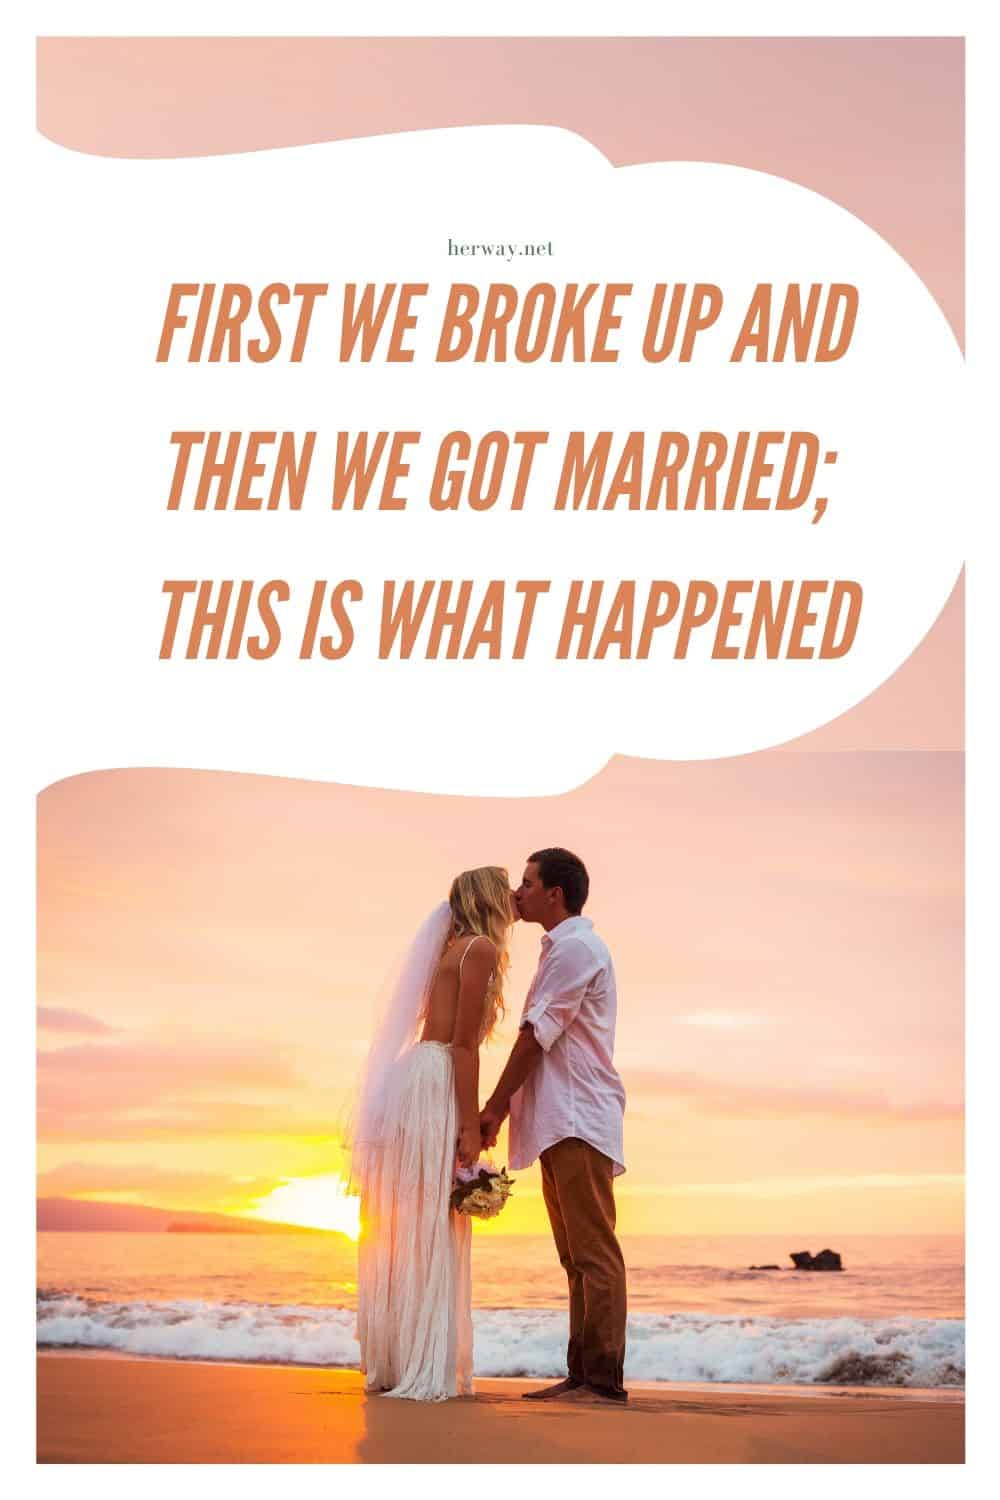 First We Broke Up And Then We Got Married; This Is What Happened